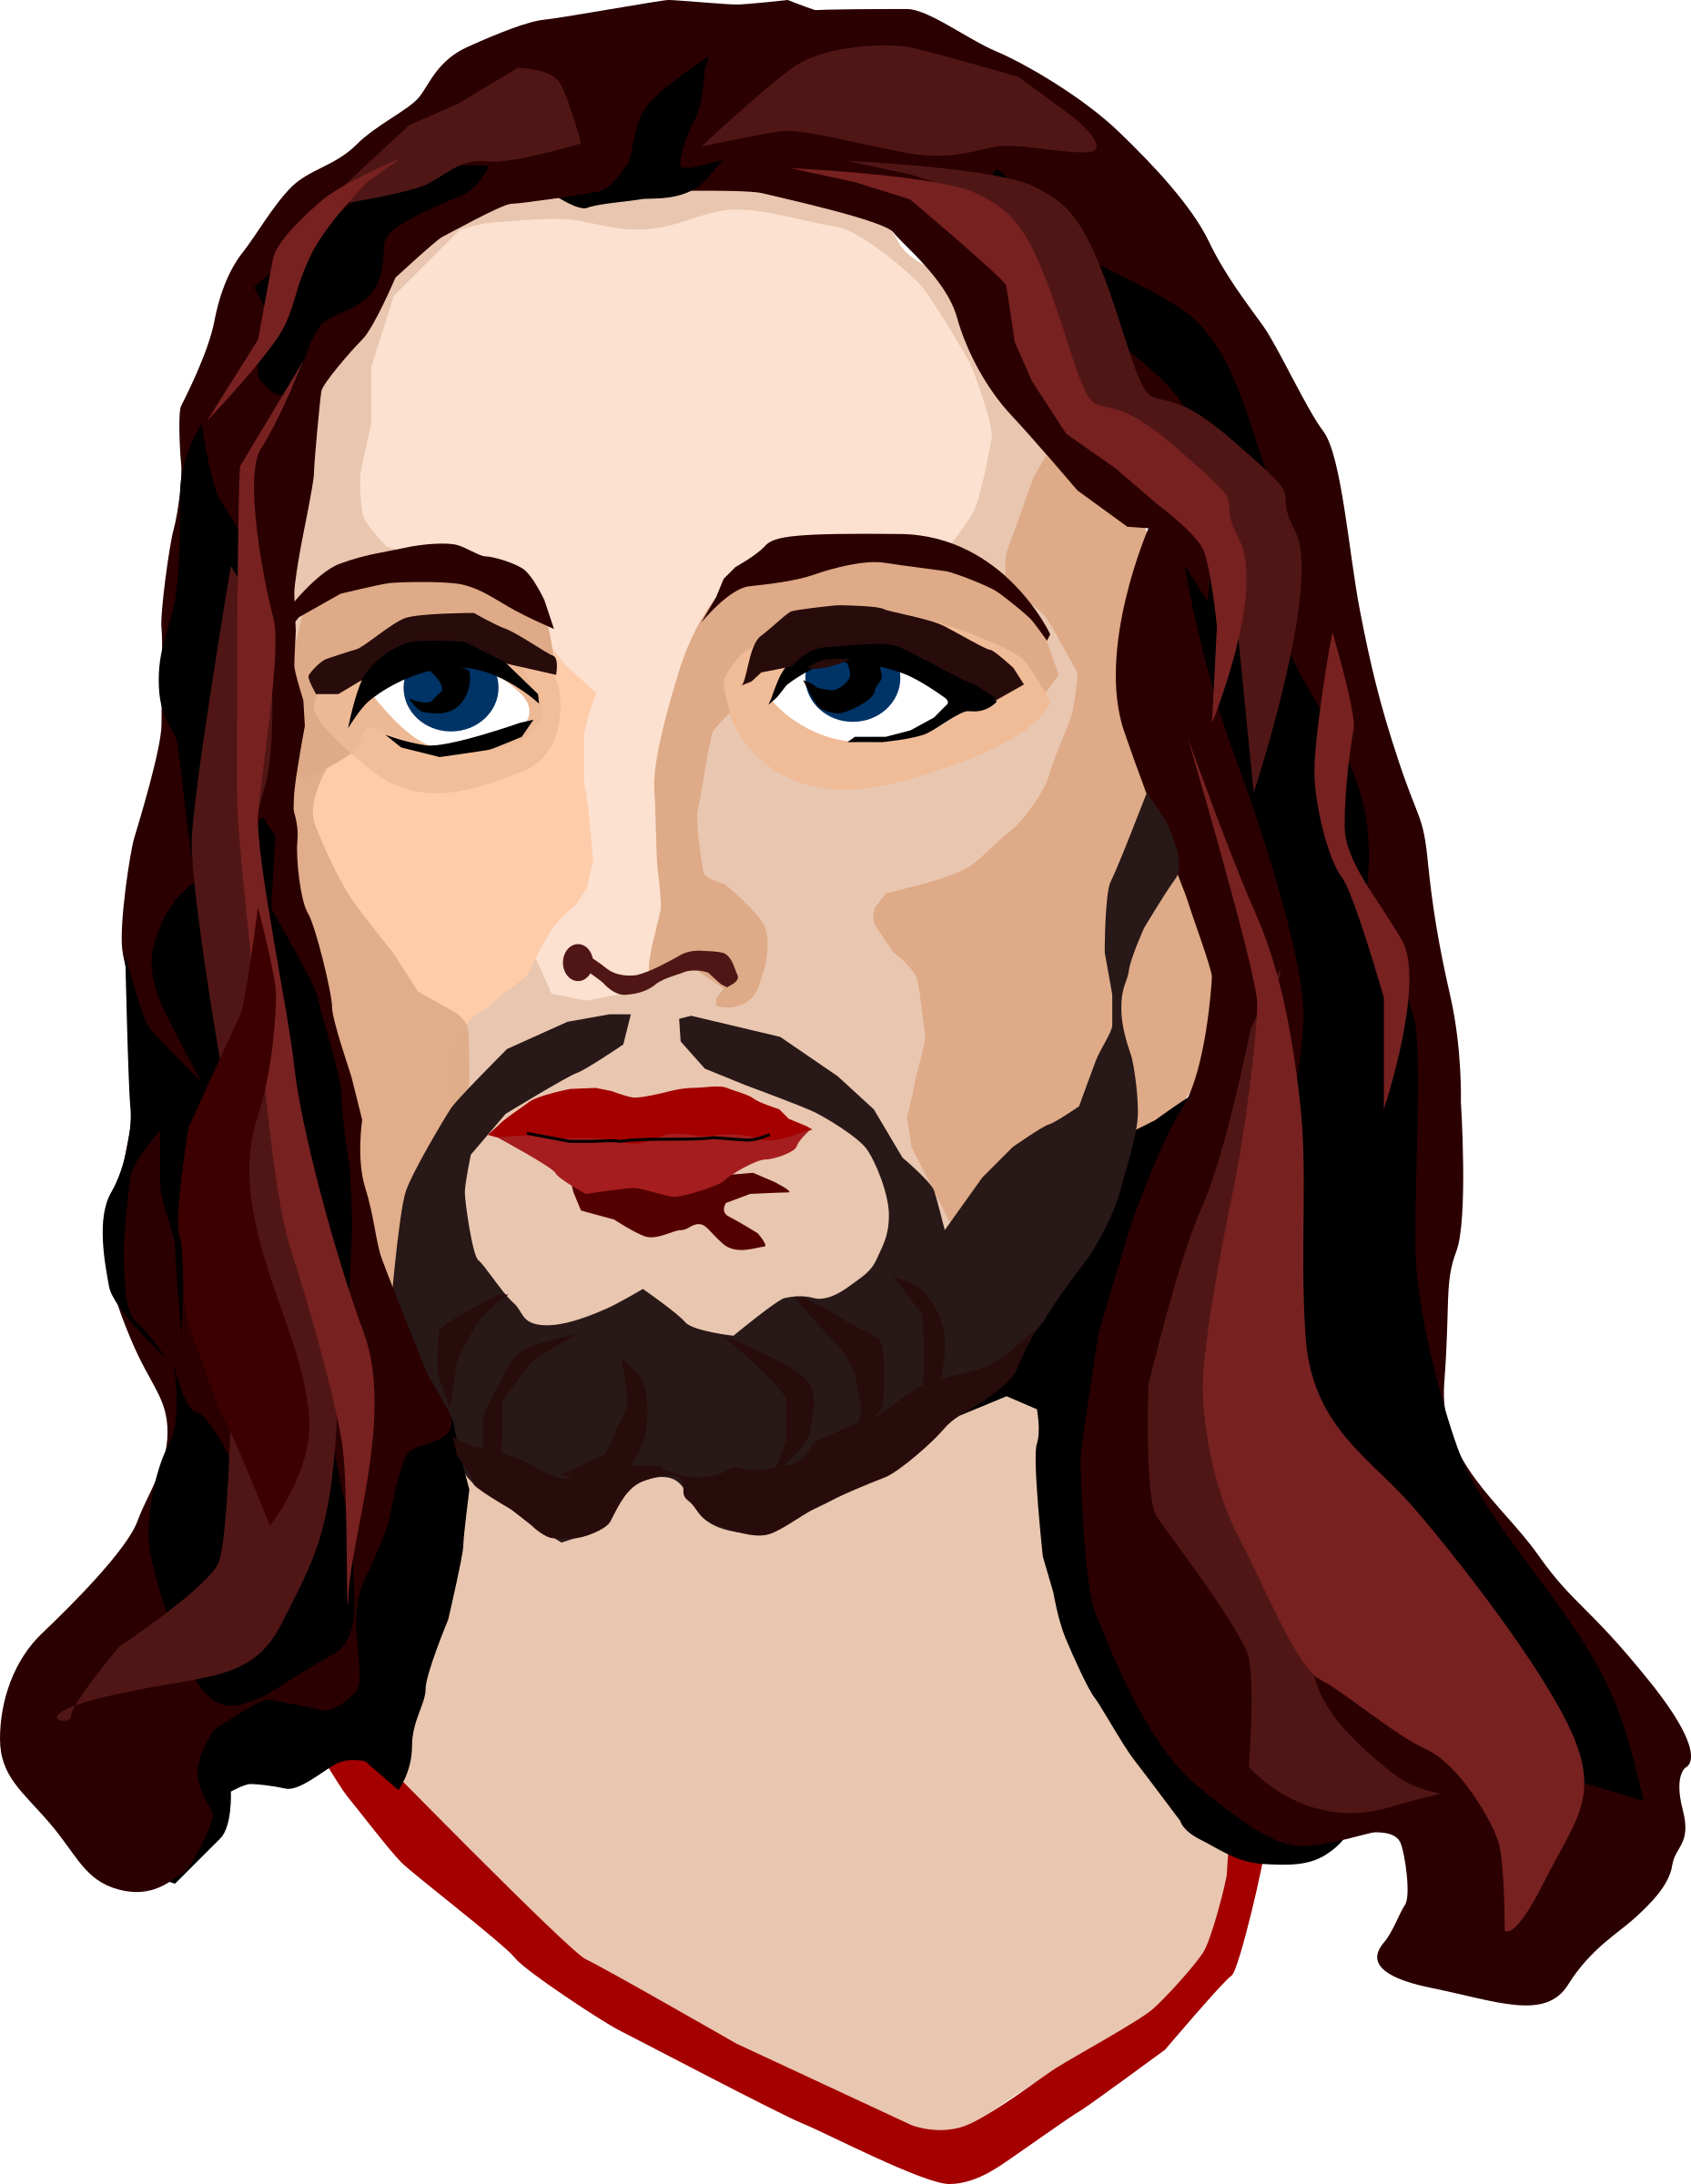 picture free download Jesus christ png image. Christian clipart christianity.